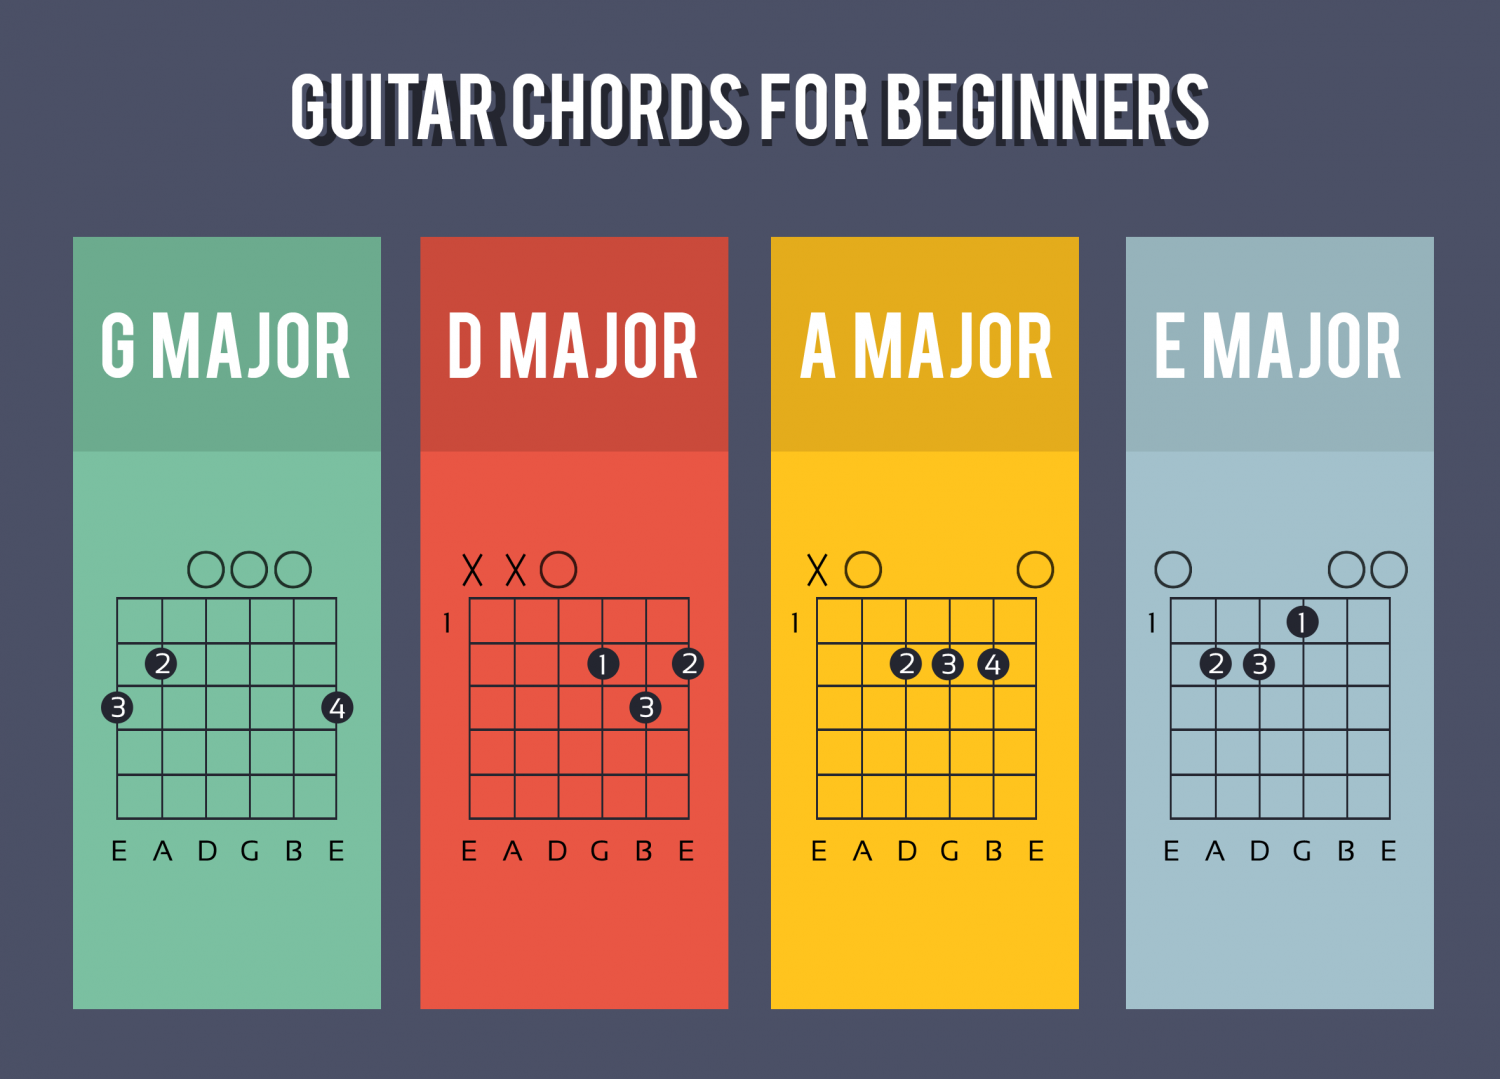 Guitar Chords For Beginners Visual